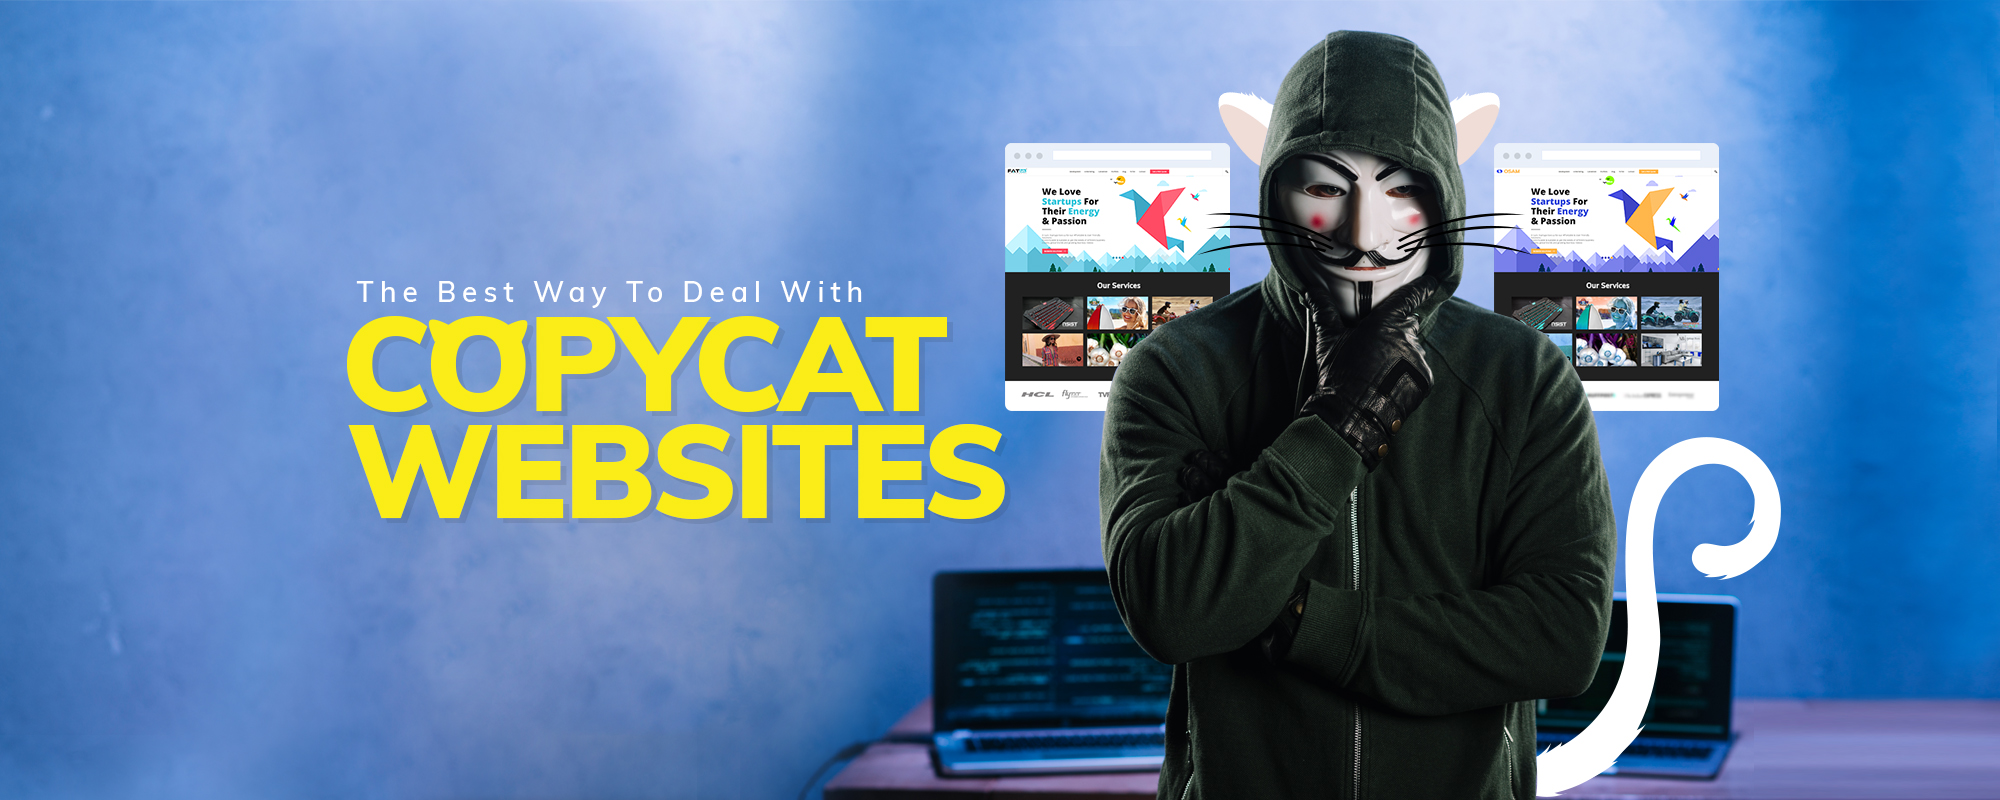 How to Protect Website from Copycats? What to do When Someone Steals your Site?